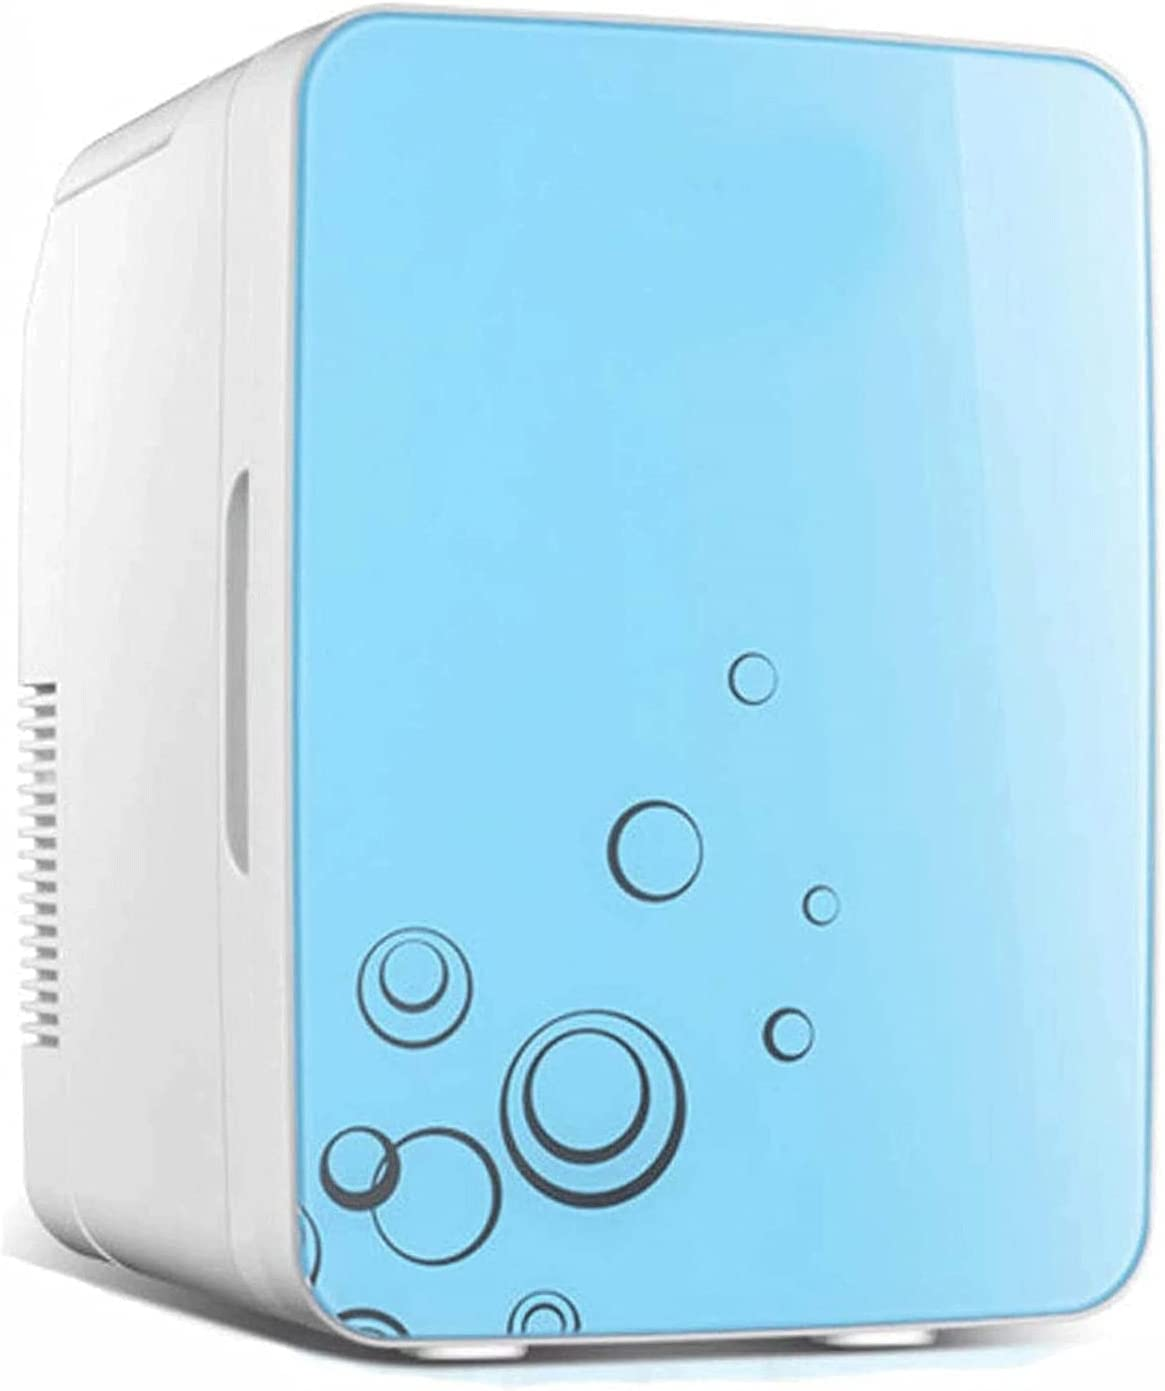 LJJSMG Shipping included Mini Department store Fridge 10 Liter Portable DC Thermoelectric Cooler AC